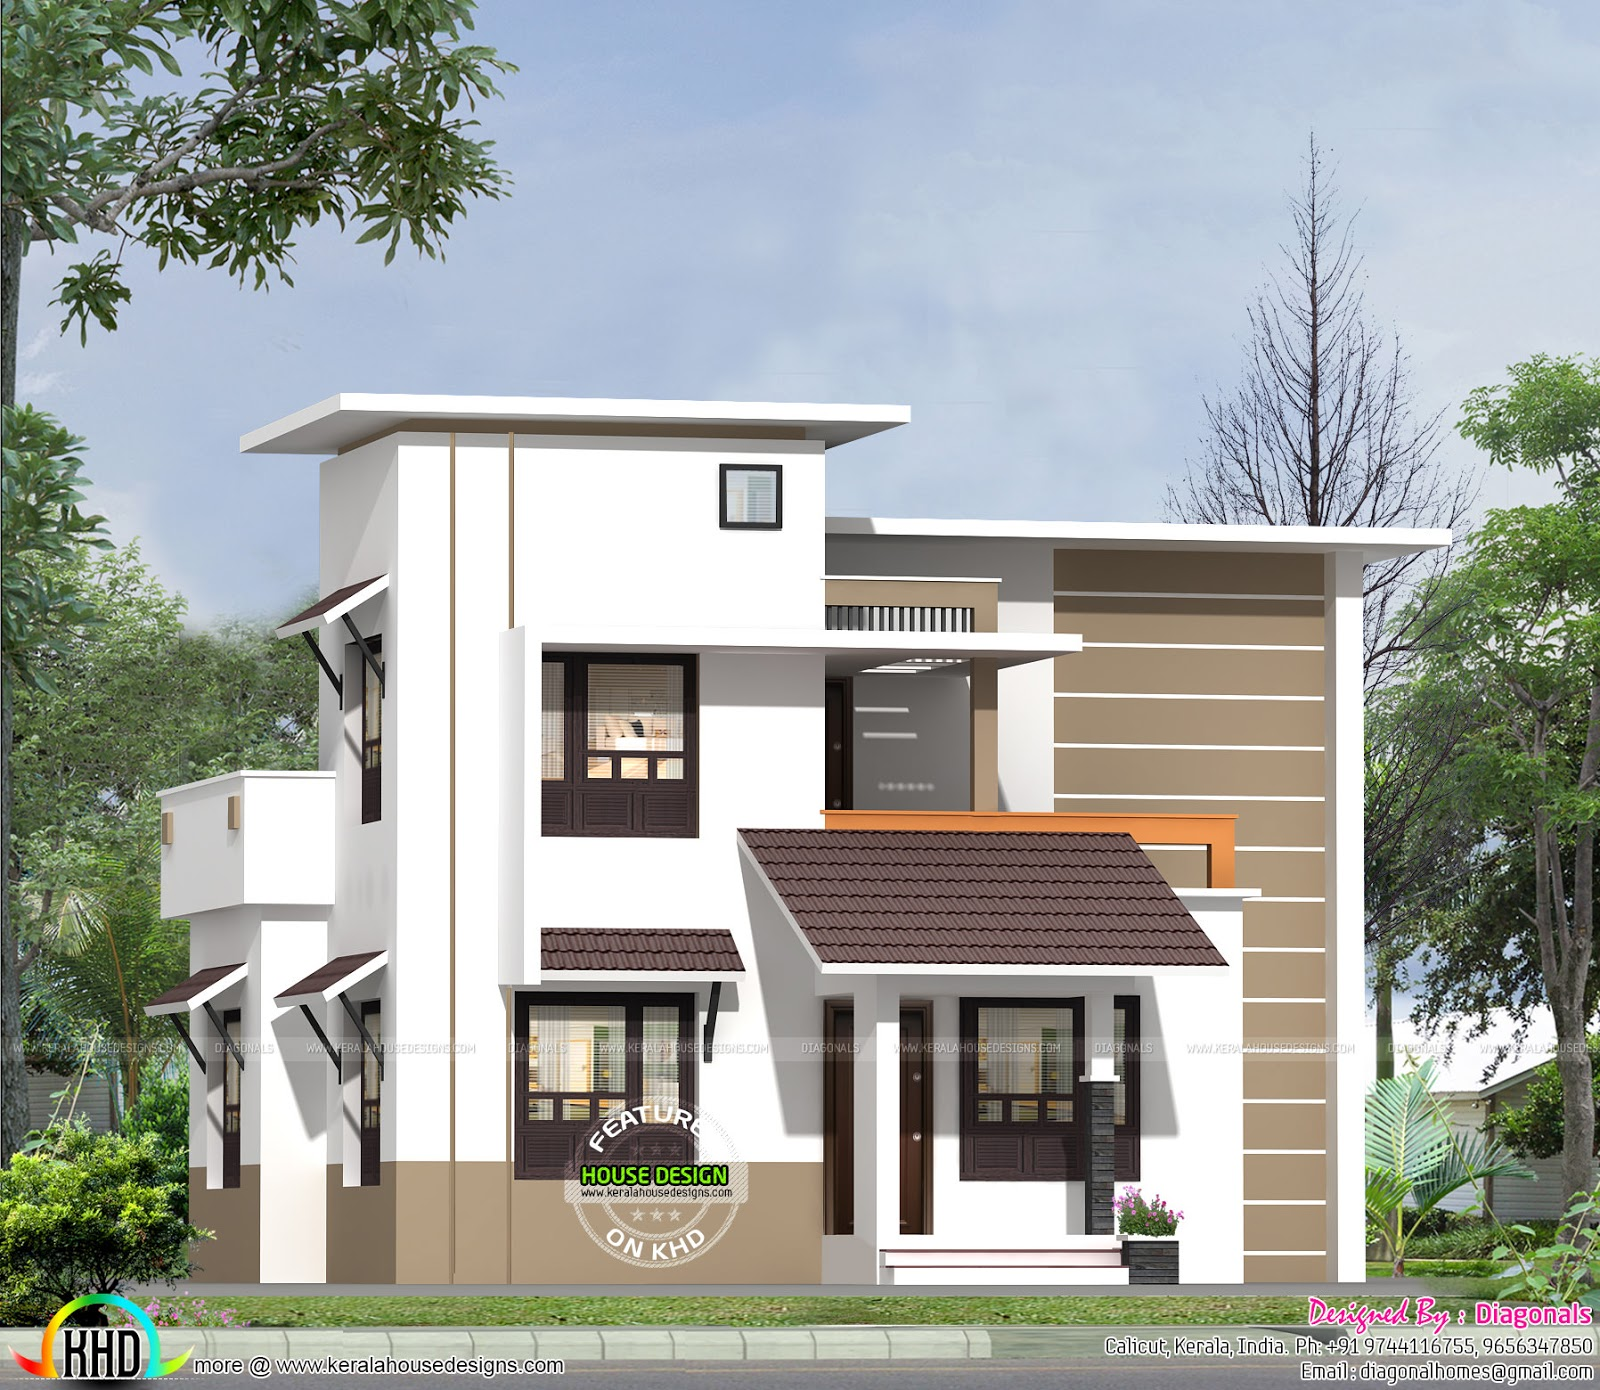 affordable low cost home kerala home design and floor plans ForLow Cost Home Design